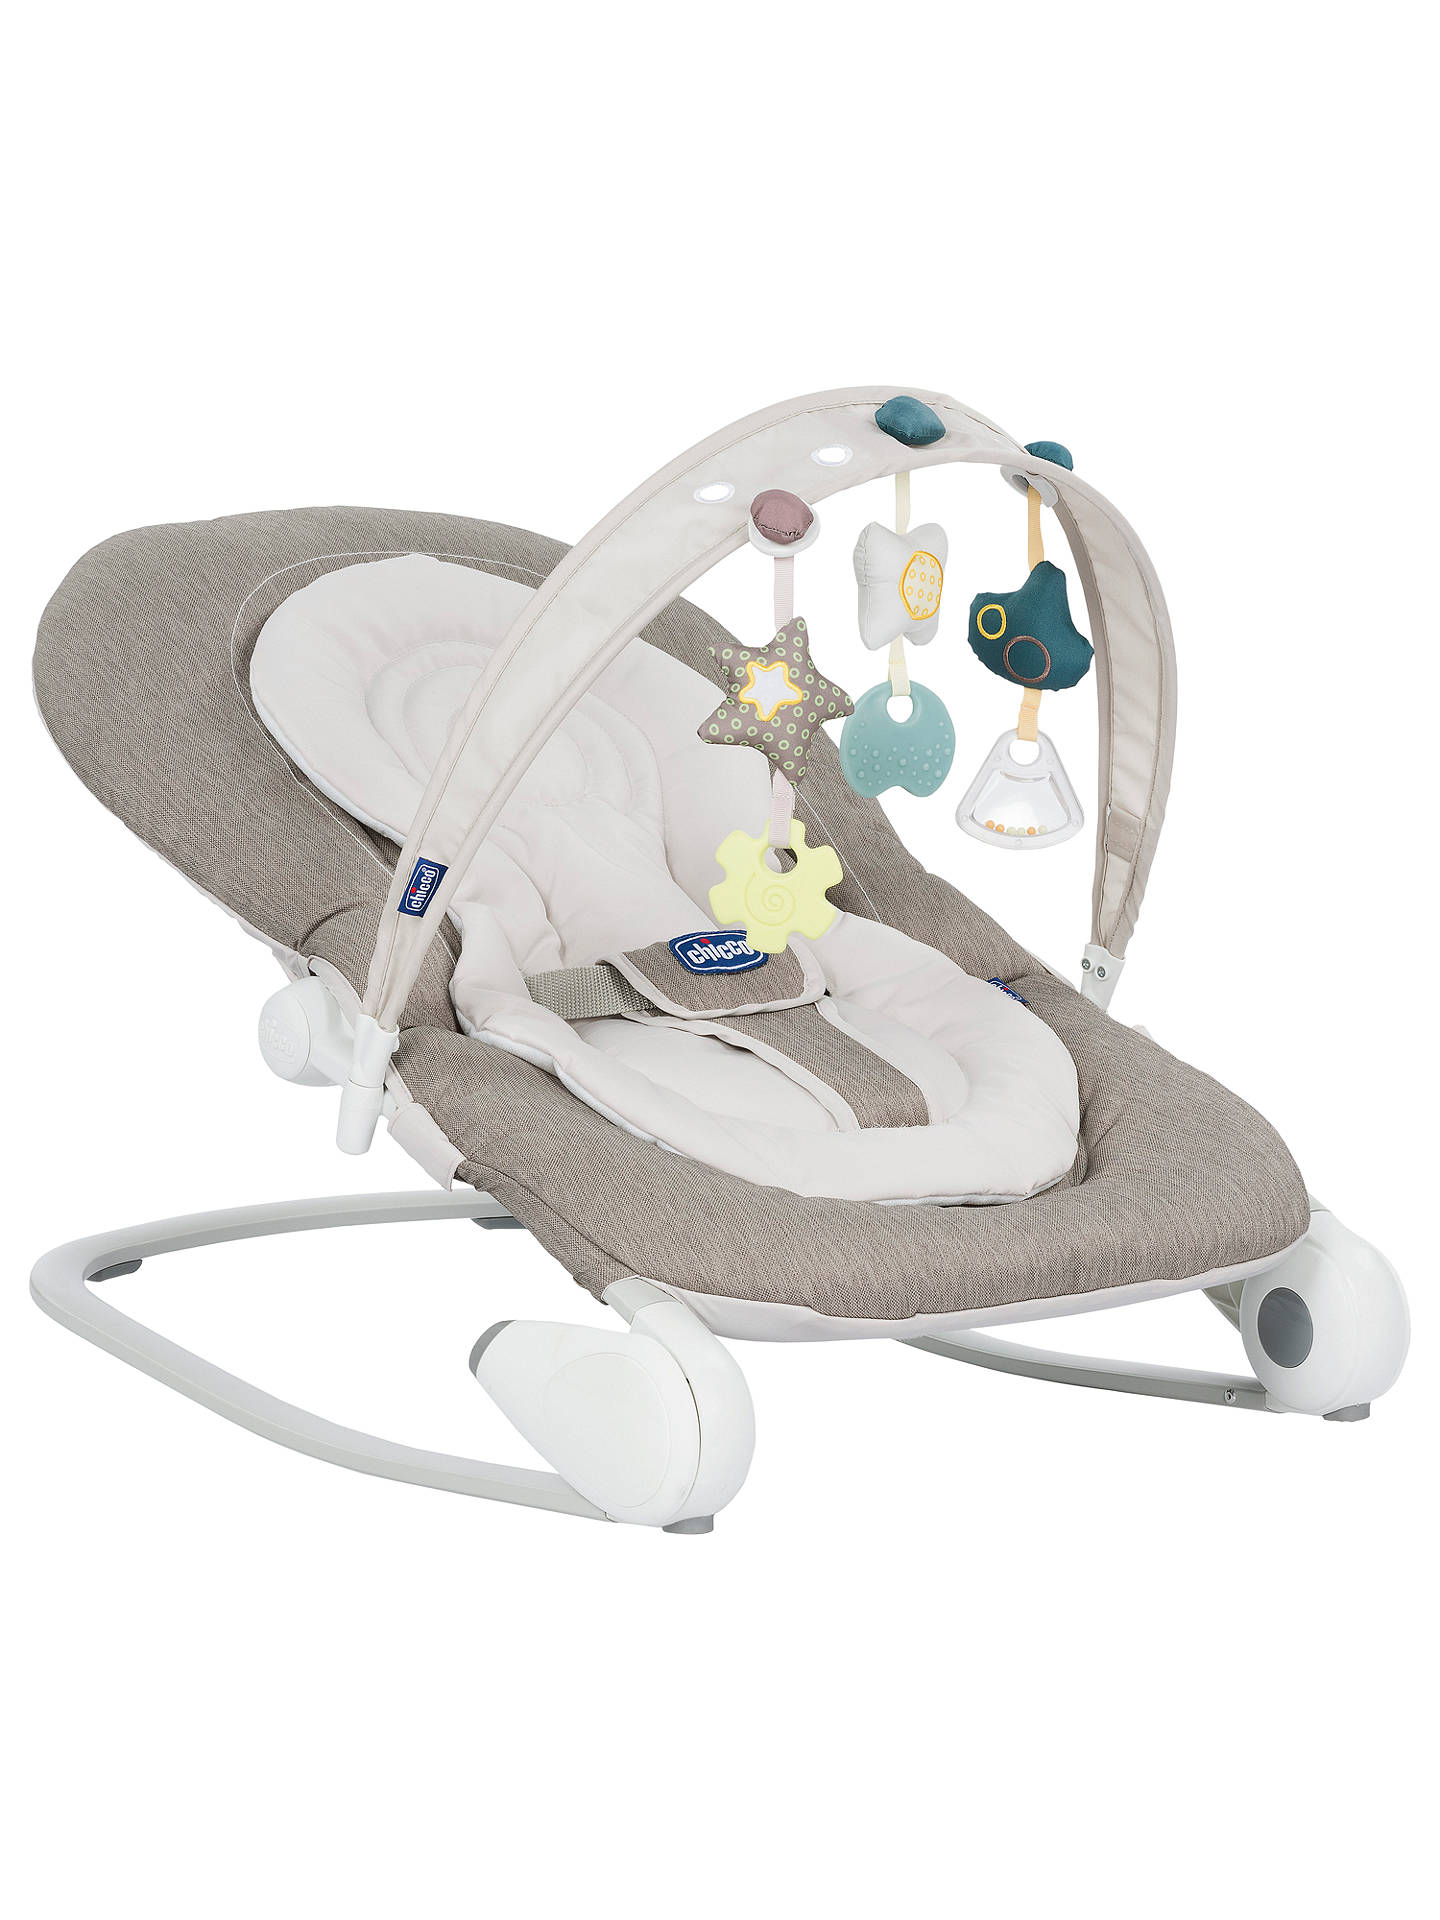 Brilliant Chicco Hoopla Baby Bouncer And Rocking Chair Legend Spiritservingveterans Wood Chair Design Ideas Spiritservingveteransorg